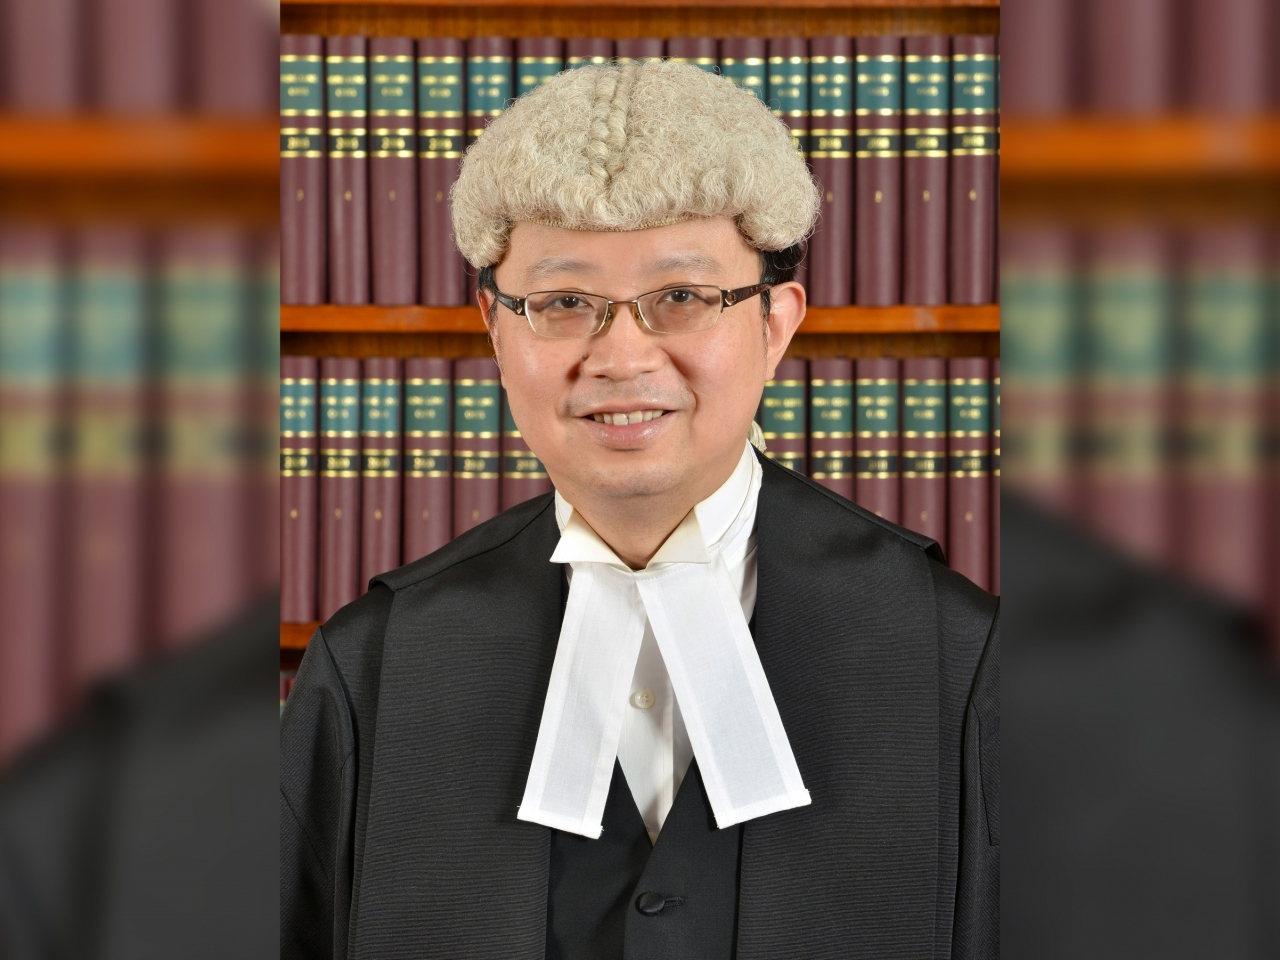 Justice Johnson Lam's appointment to the city's top court is subject to Legco approval. Photo: RTHK